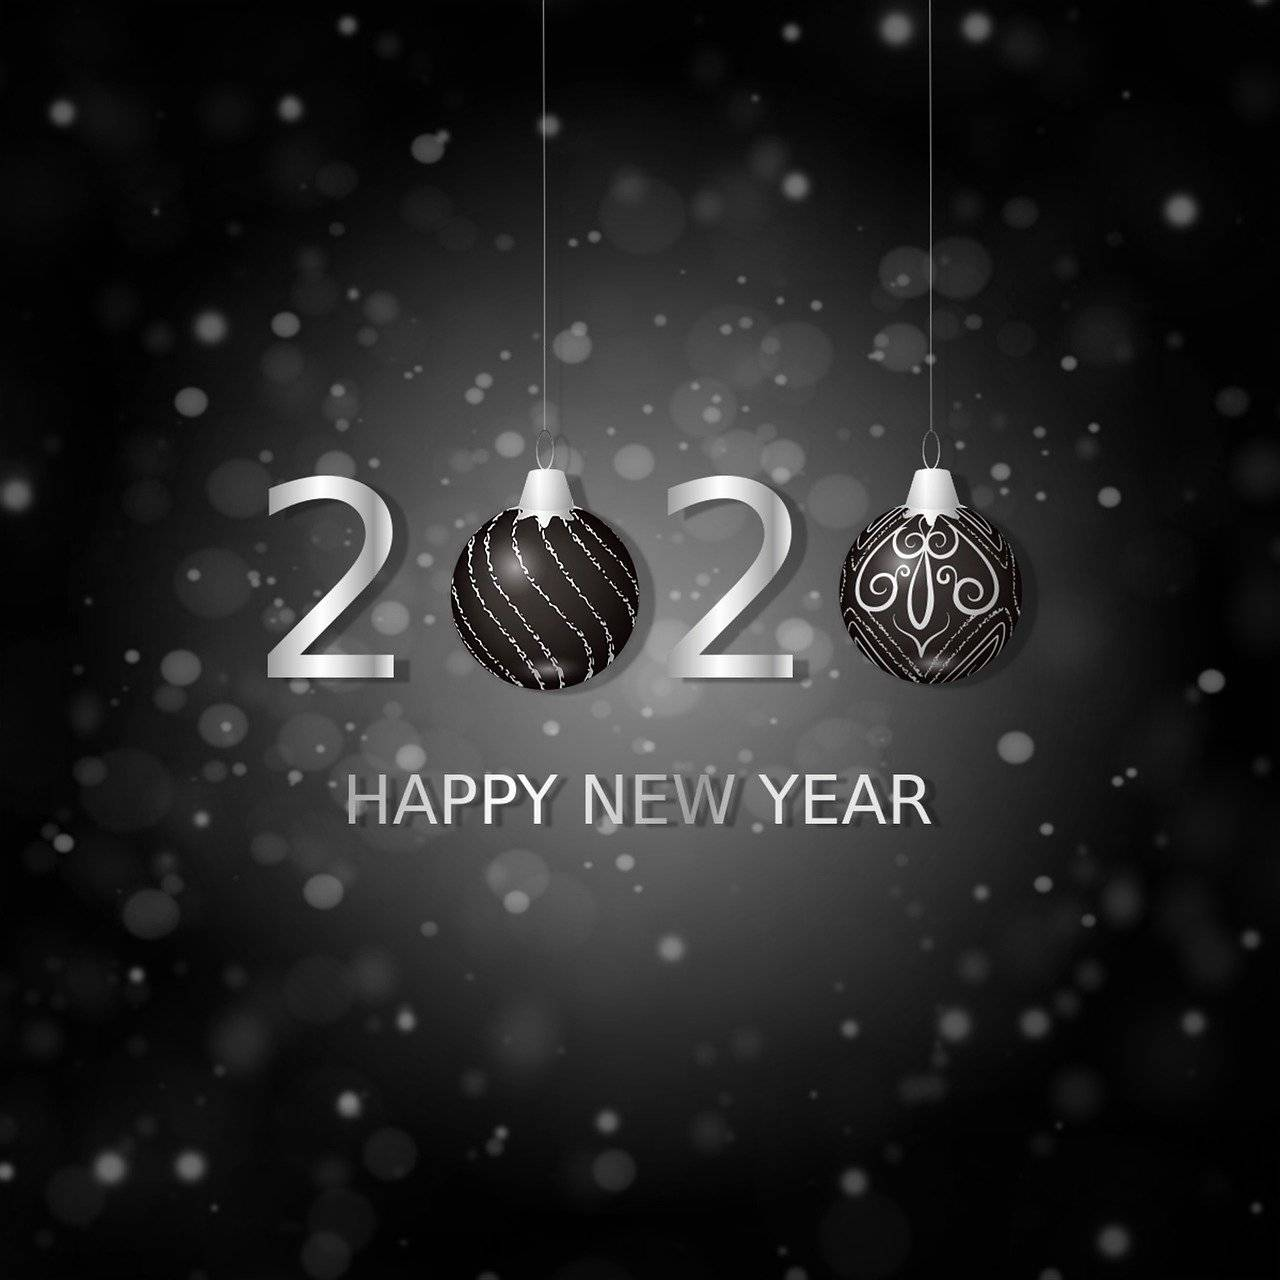 Happy New Year 2020: Status update and SMS